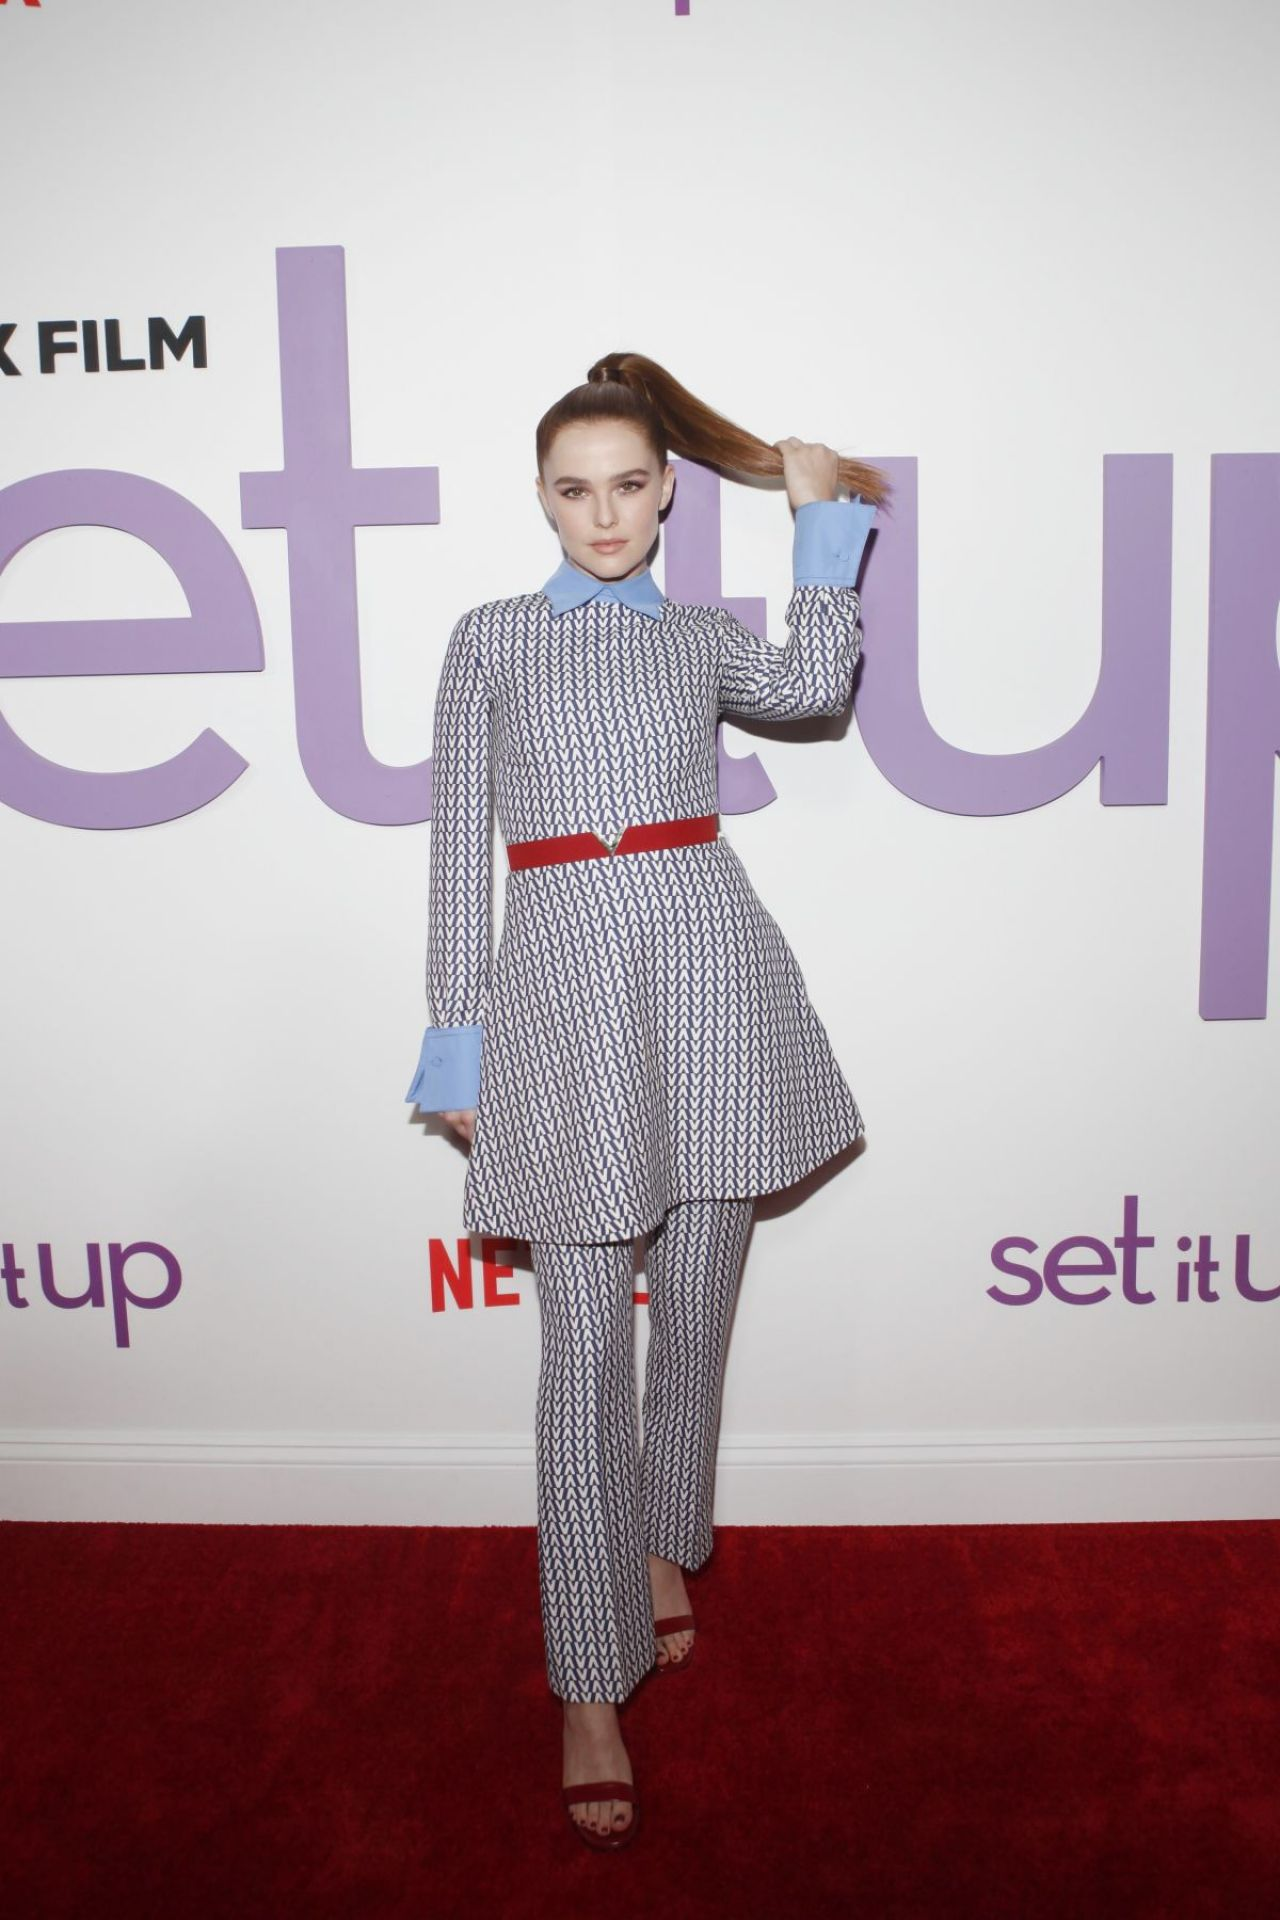 https://celebmafia.com/wp-content/uploads/2018/06/zoey-deutch-set-it-up-specials-screening-in-new-york-5.jpg